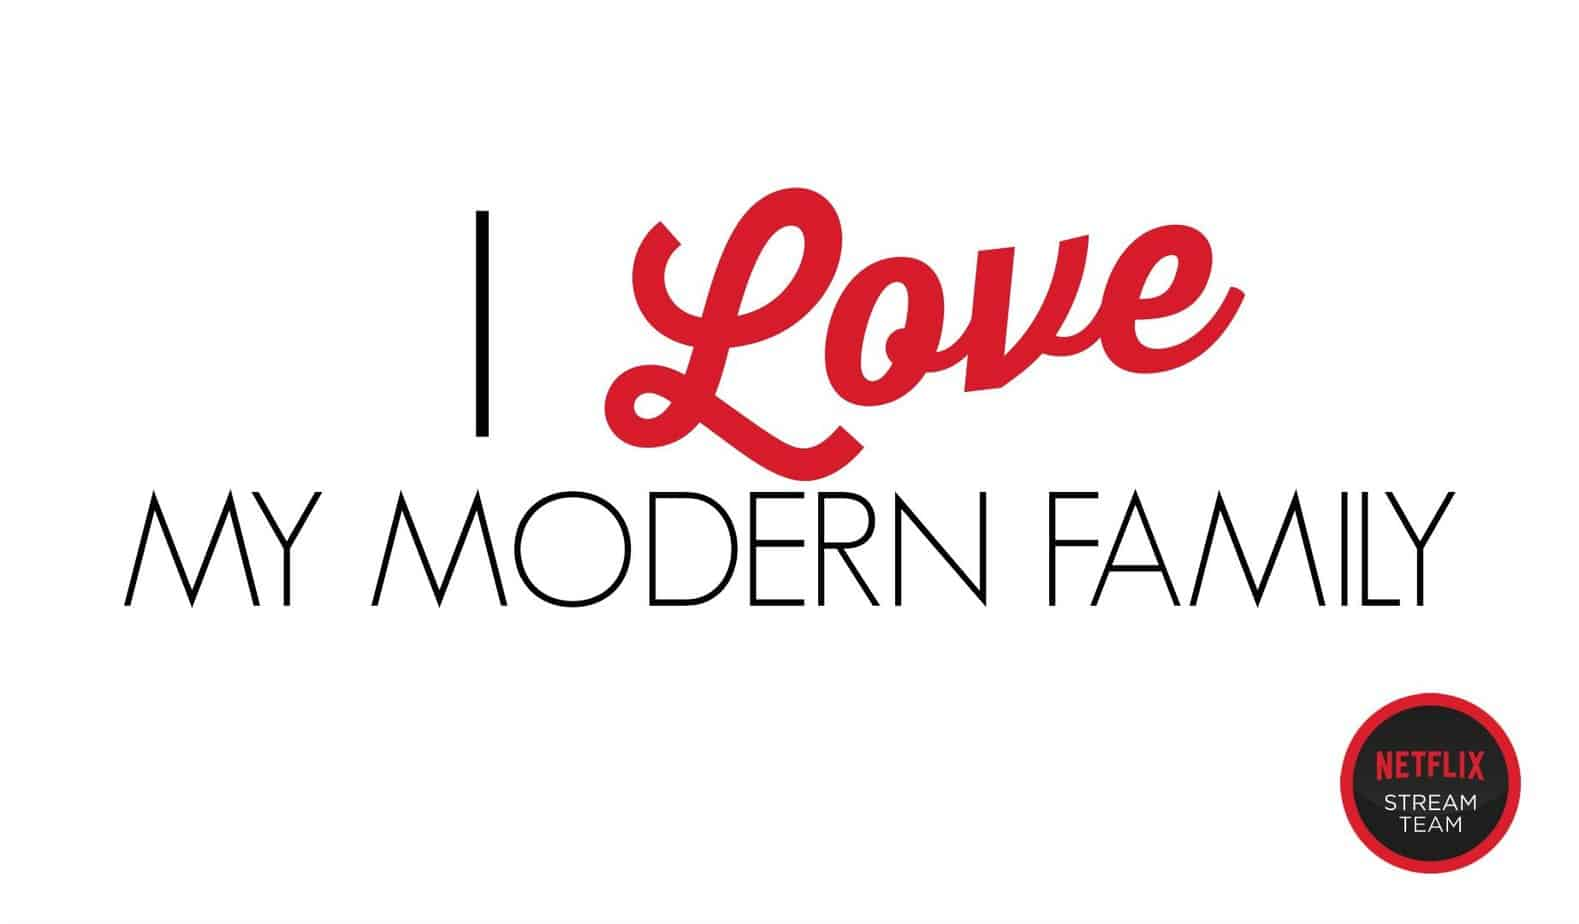 I Love My Modern Family #streamteam 5